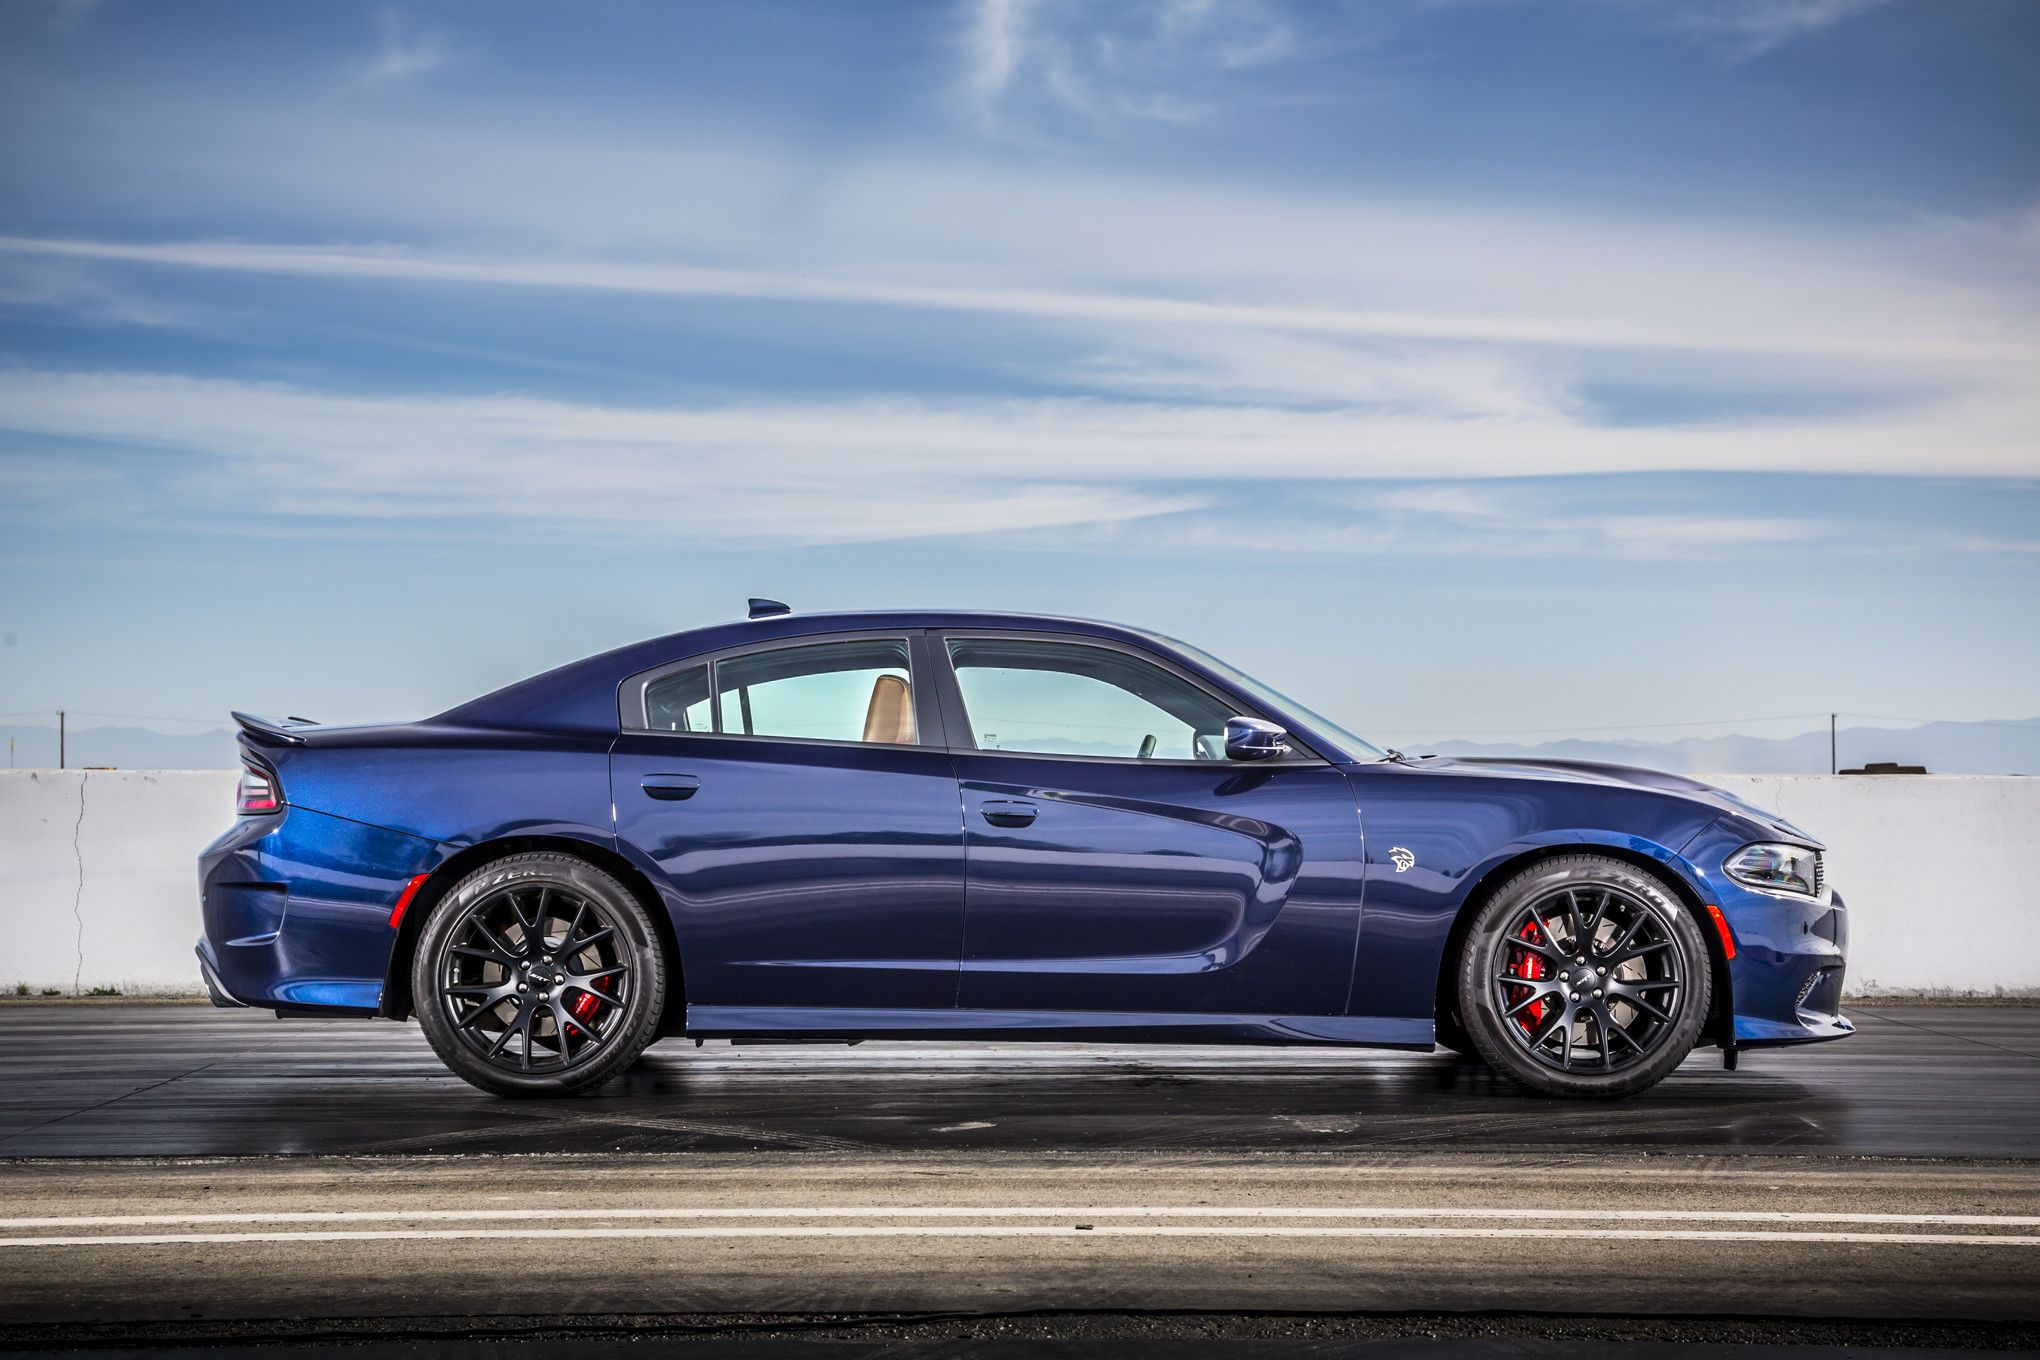 Blue Dodge Charger Srt8 Wallpapers Top Free Blue Dodge Charger Srt8 Backgrounds Wallpaperaccess